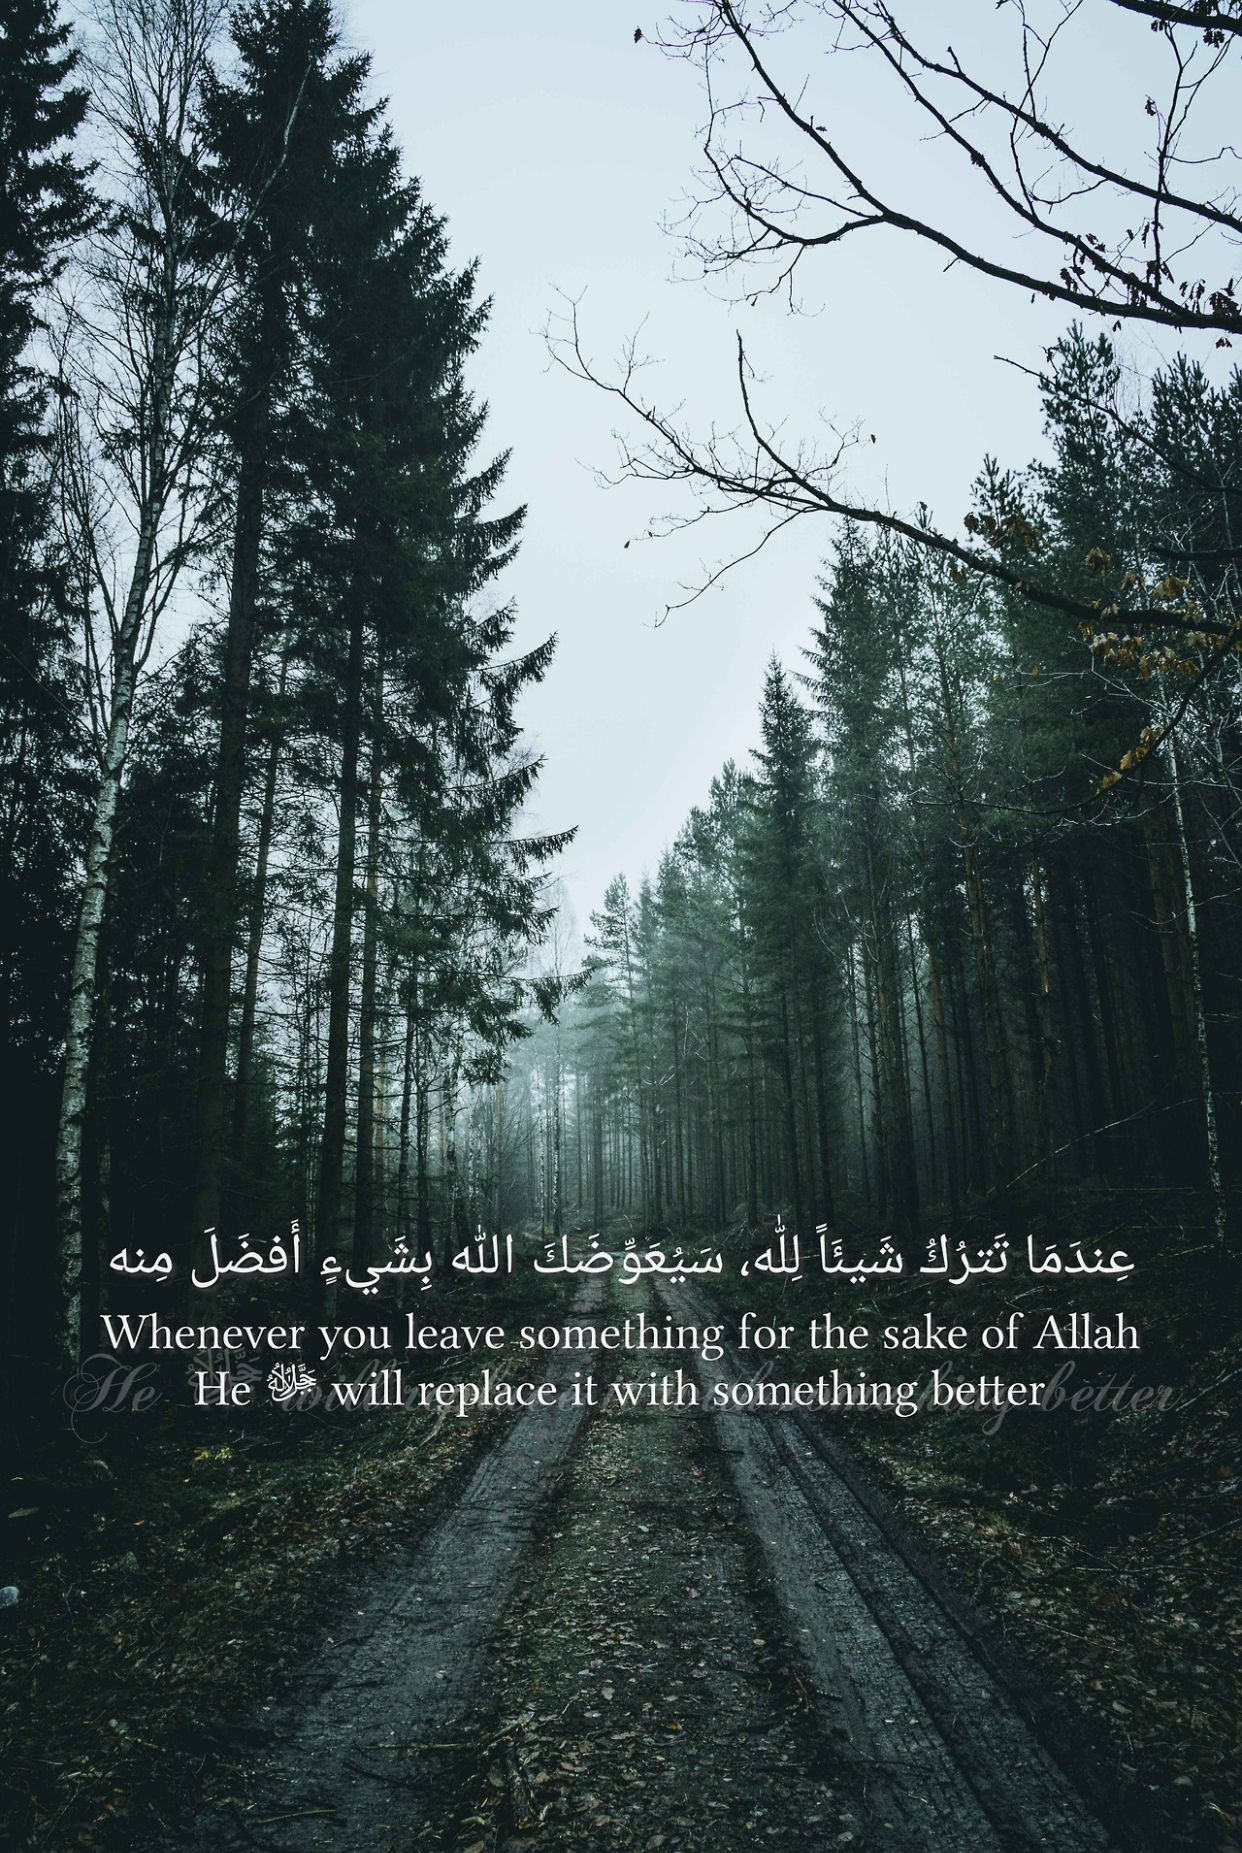 Pin By Fahad Baloch On Quran Verses Islamic Quotes Forest